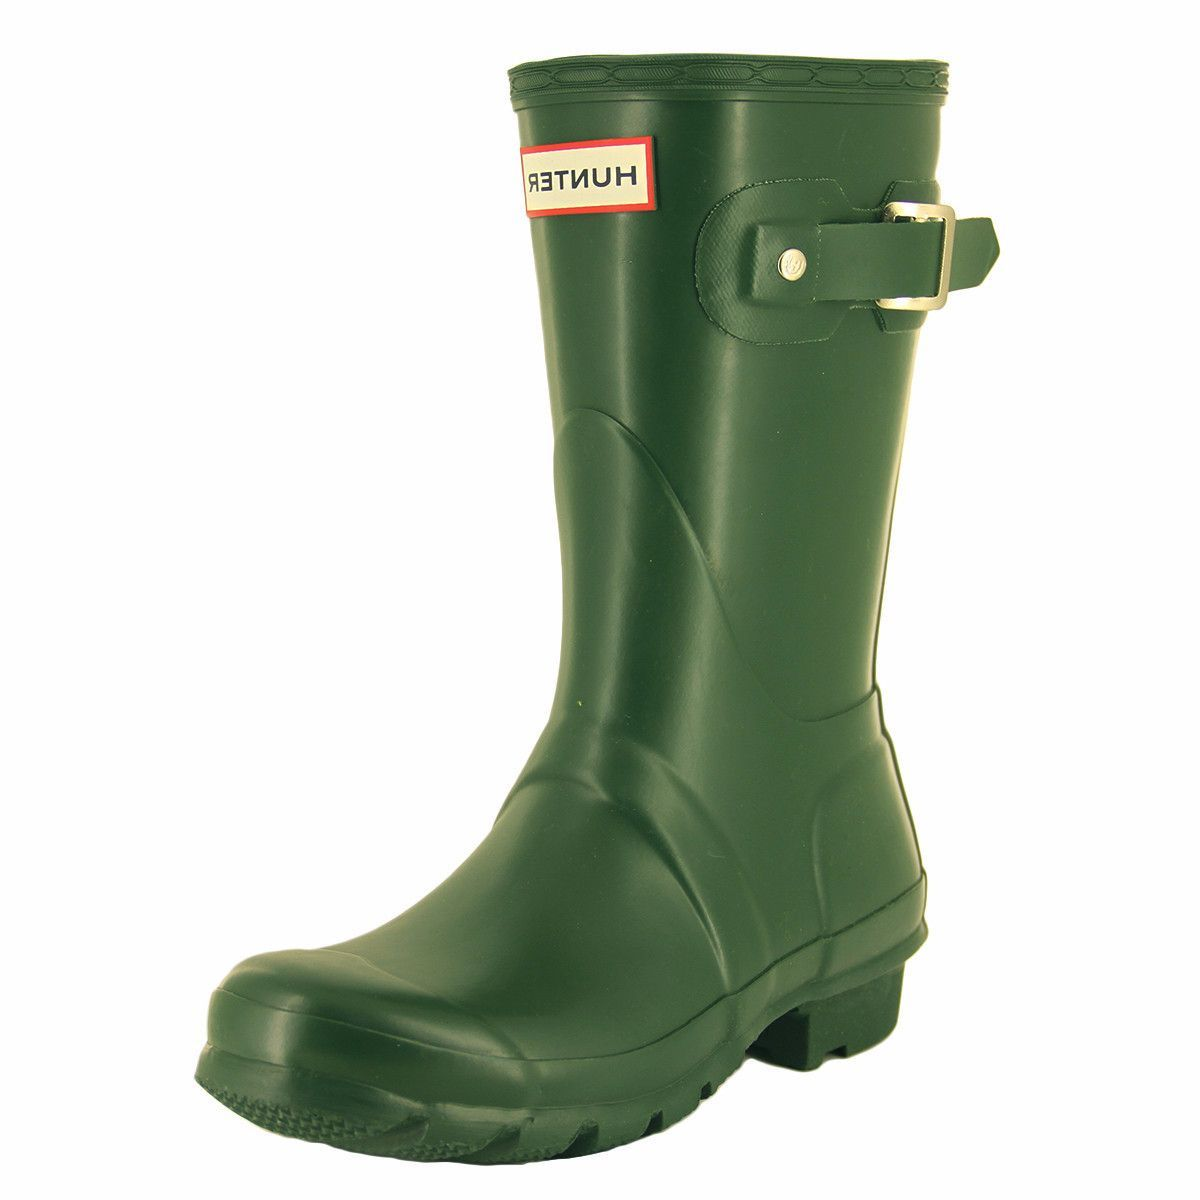 Hunter - Women's Original Short Rain Boots - Hunter Green